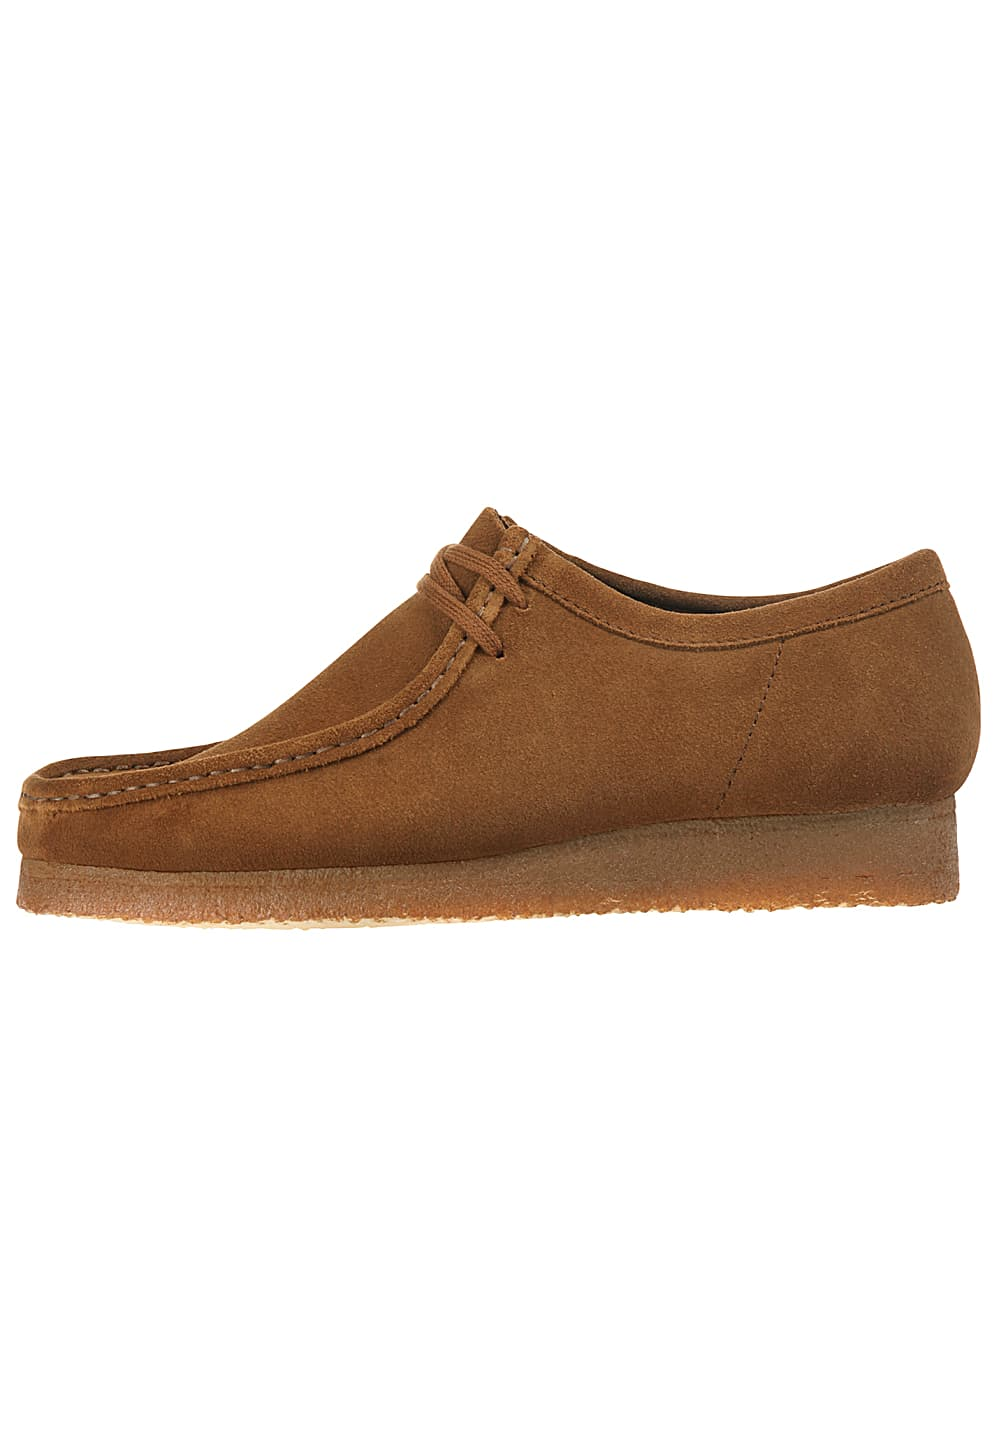 Wallabees Heren | Shop Heren Wallabees Online | Clarks